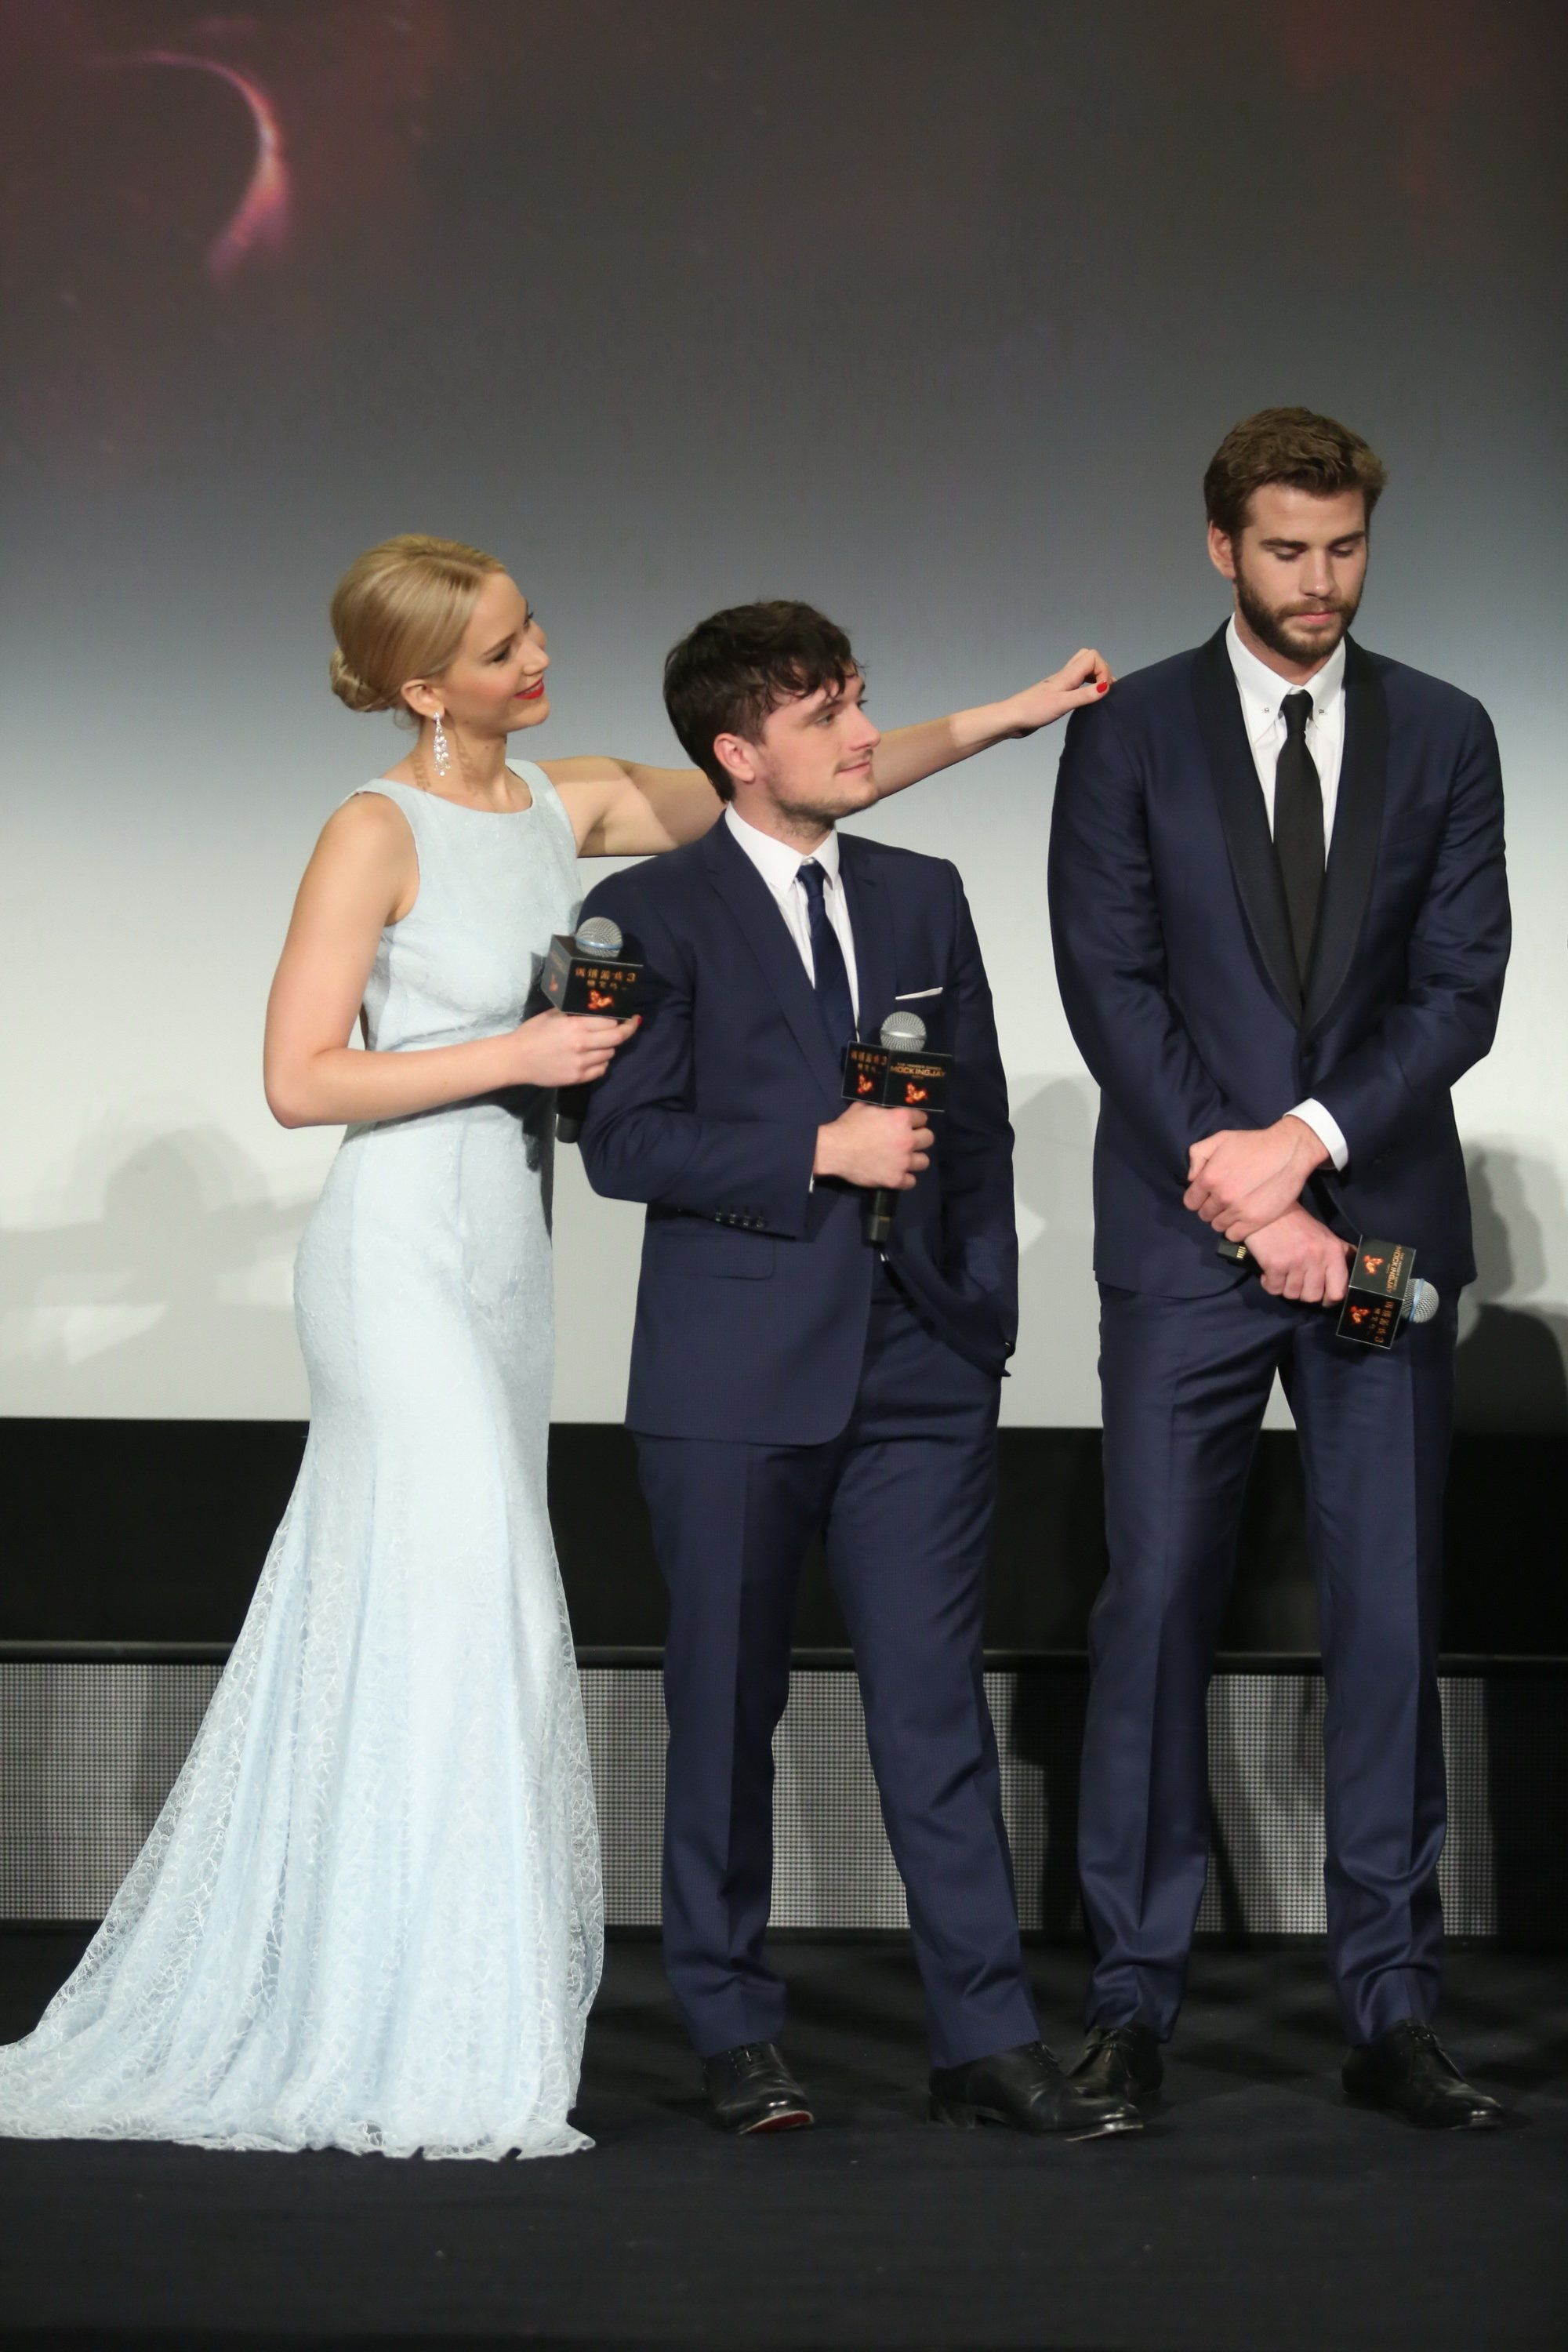 BEIJING, CHINA - NOVEMBER 12:  (CHINA OUT) (L - R) Actress Jennifer Lawrence, actor Josh Hutcherson and actor Liam Hemsworth attend 'Los Juegos Del Hambre: Sinsajo - Part 2' premiere at the Solana on November 12, 2015 in Beijing, China.  (Photo by ChinaFotoPress/ChinaFotoPress via Getty Images)